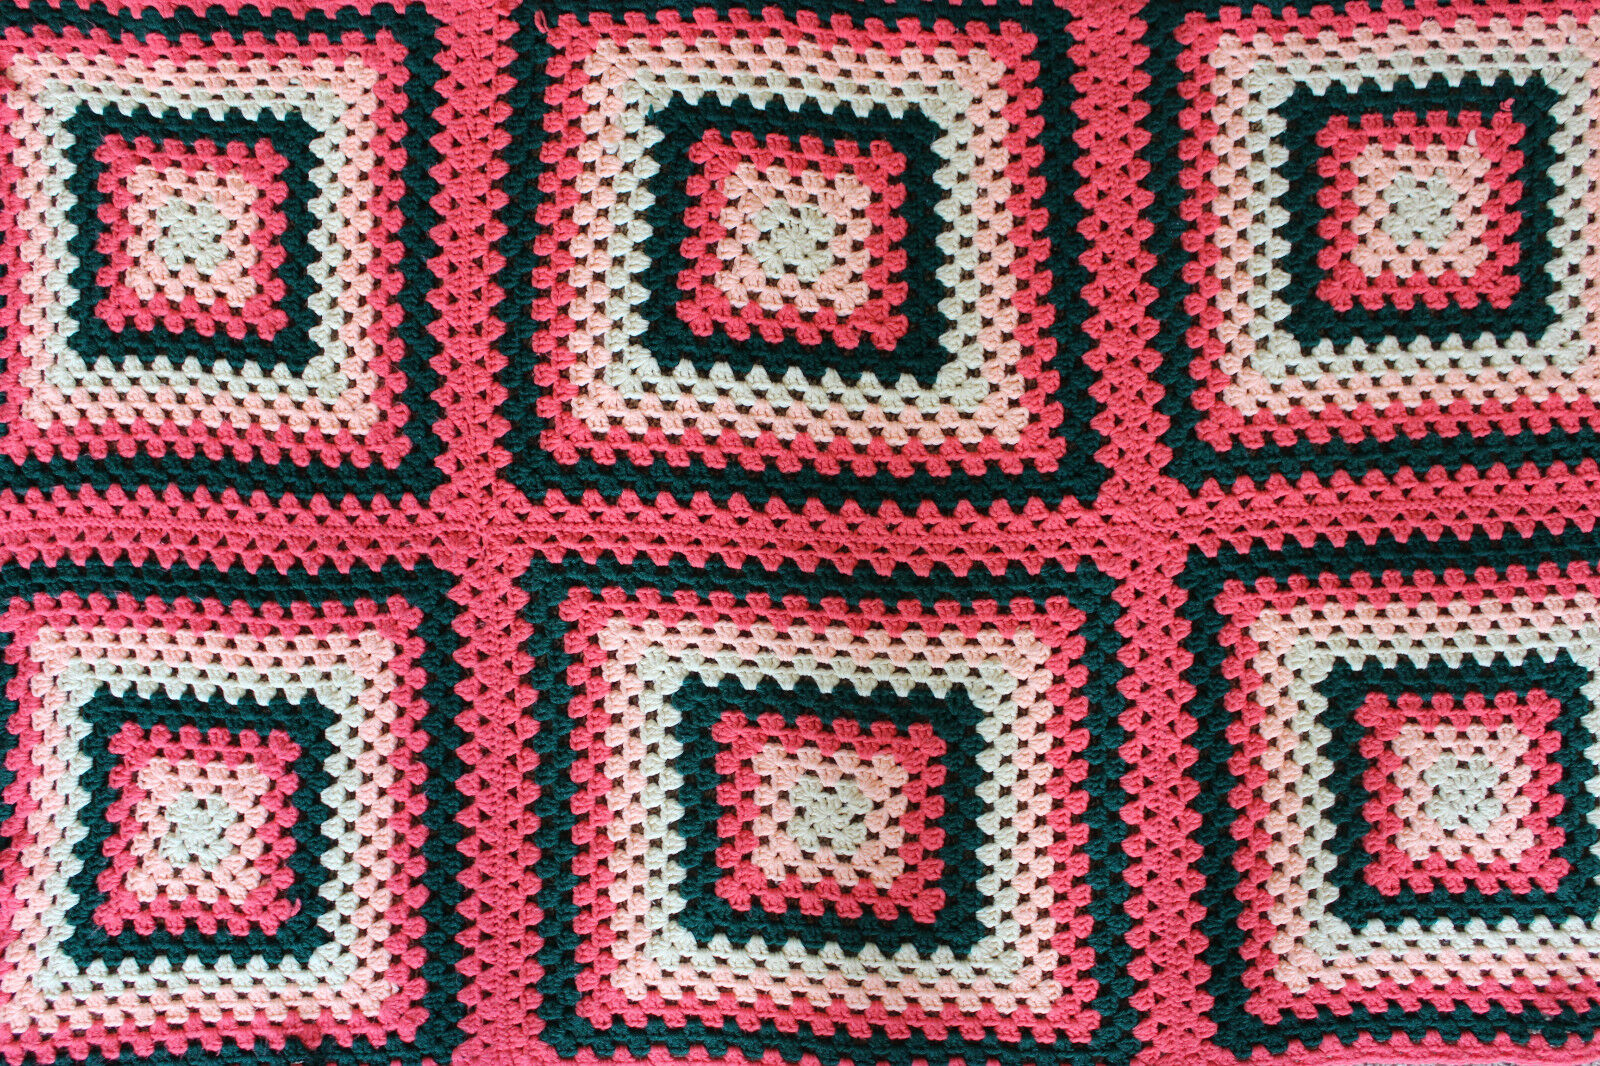 Hand Made Crochet Granny Square Afghan Pink Green White Throw Blanket 34  x 53